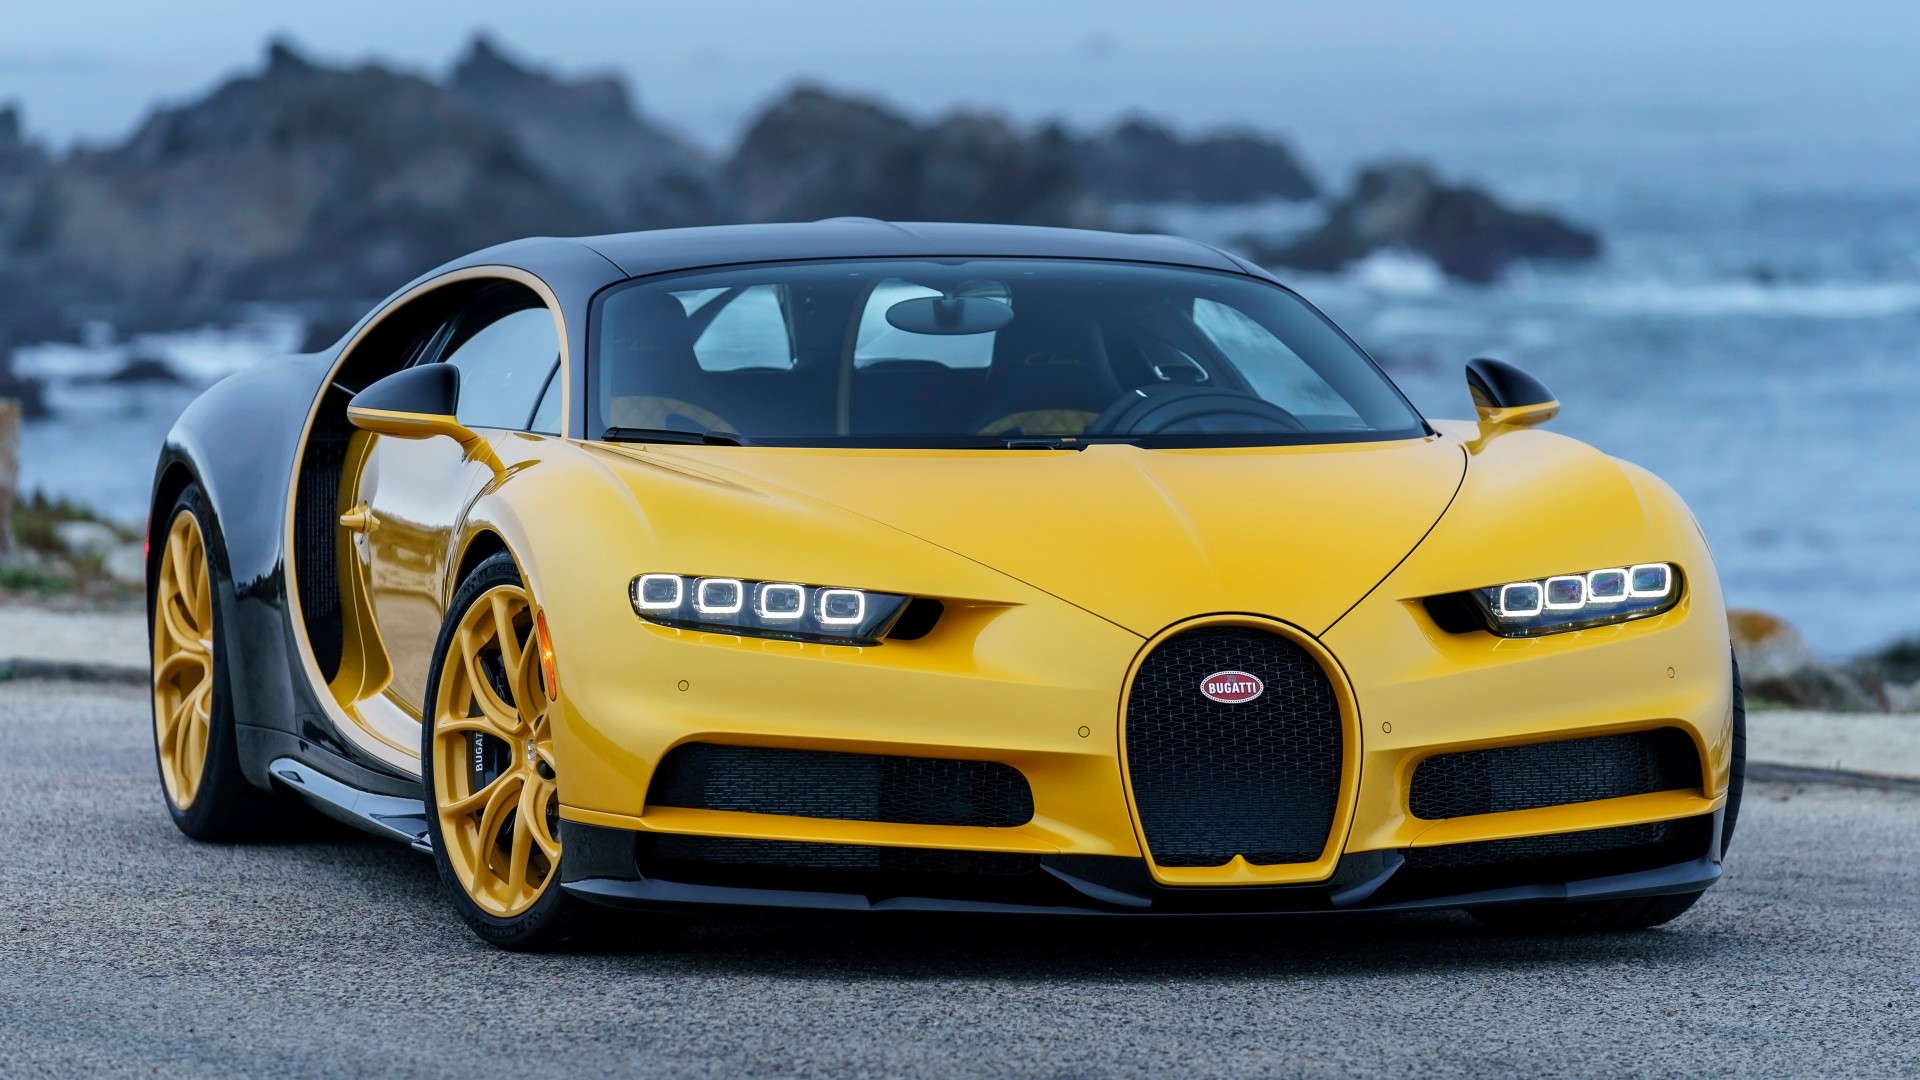 2018 Bugatti Chiron Yellow And Black 4k 2 Wallpaper Hd Car